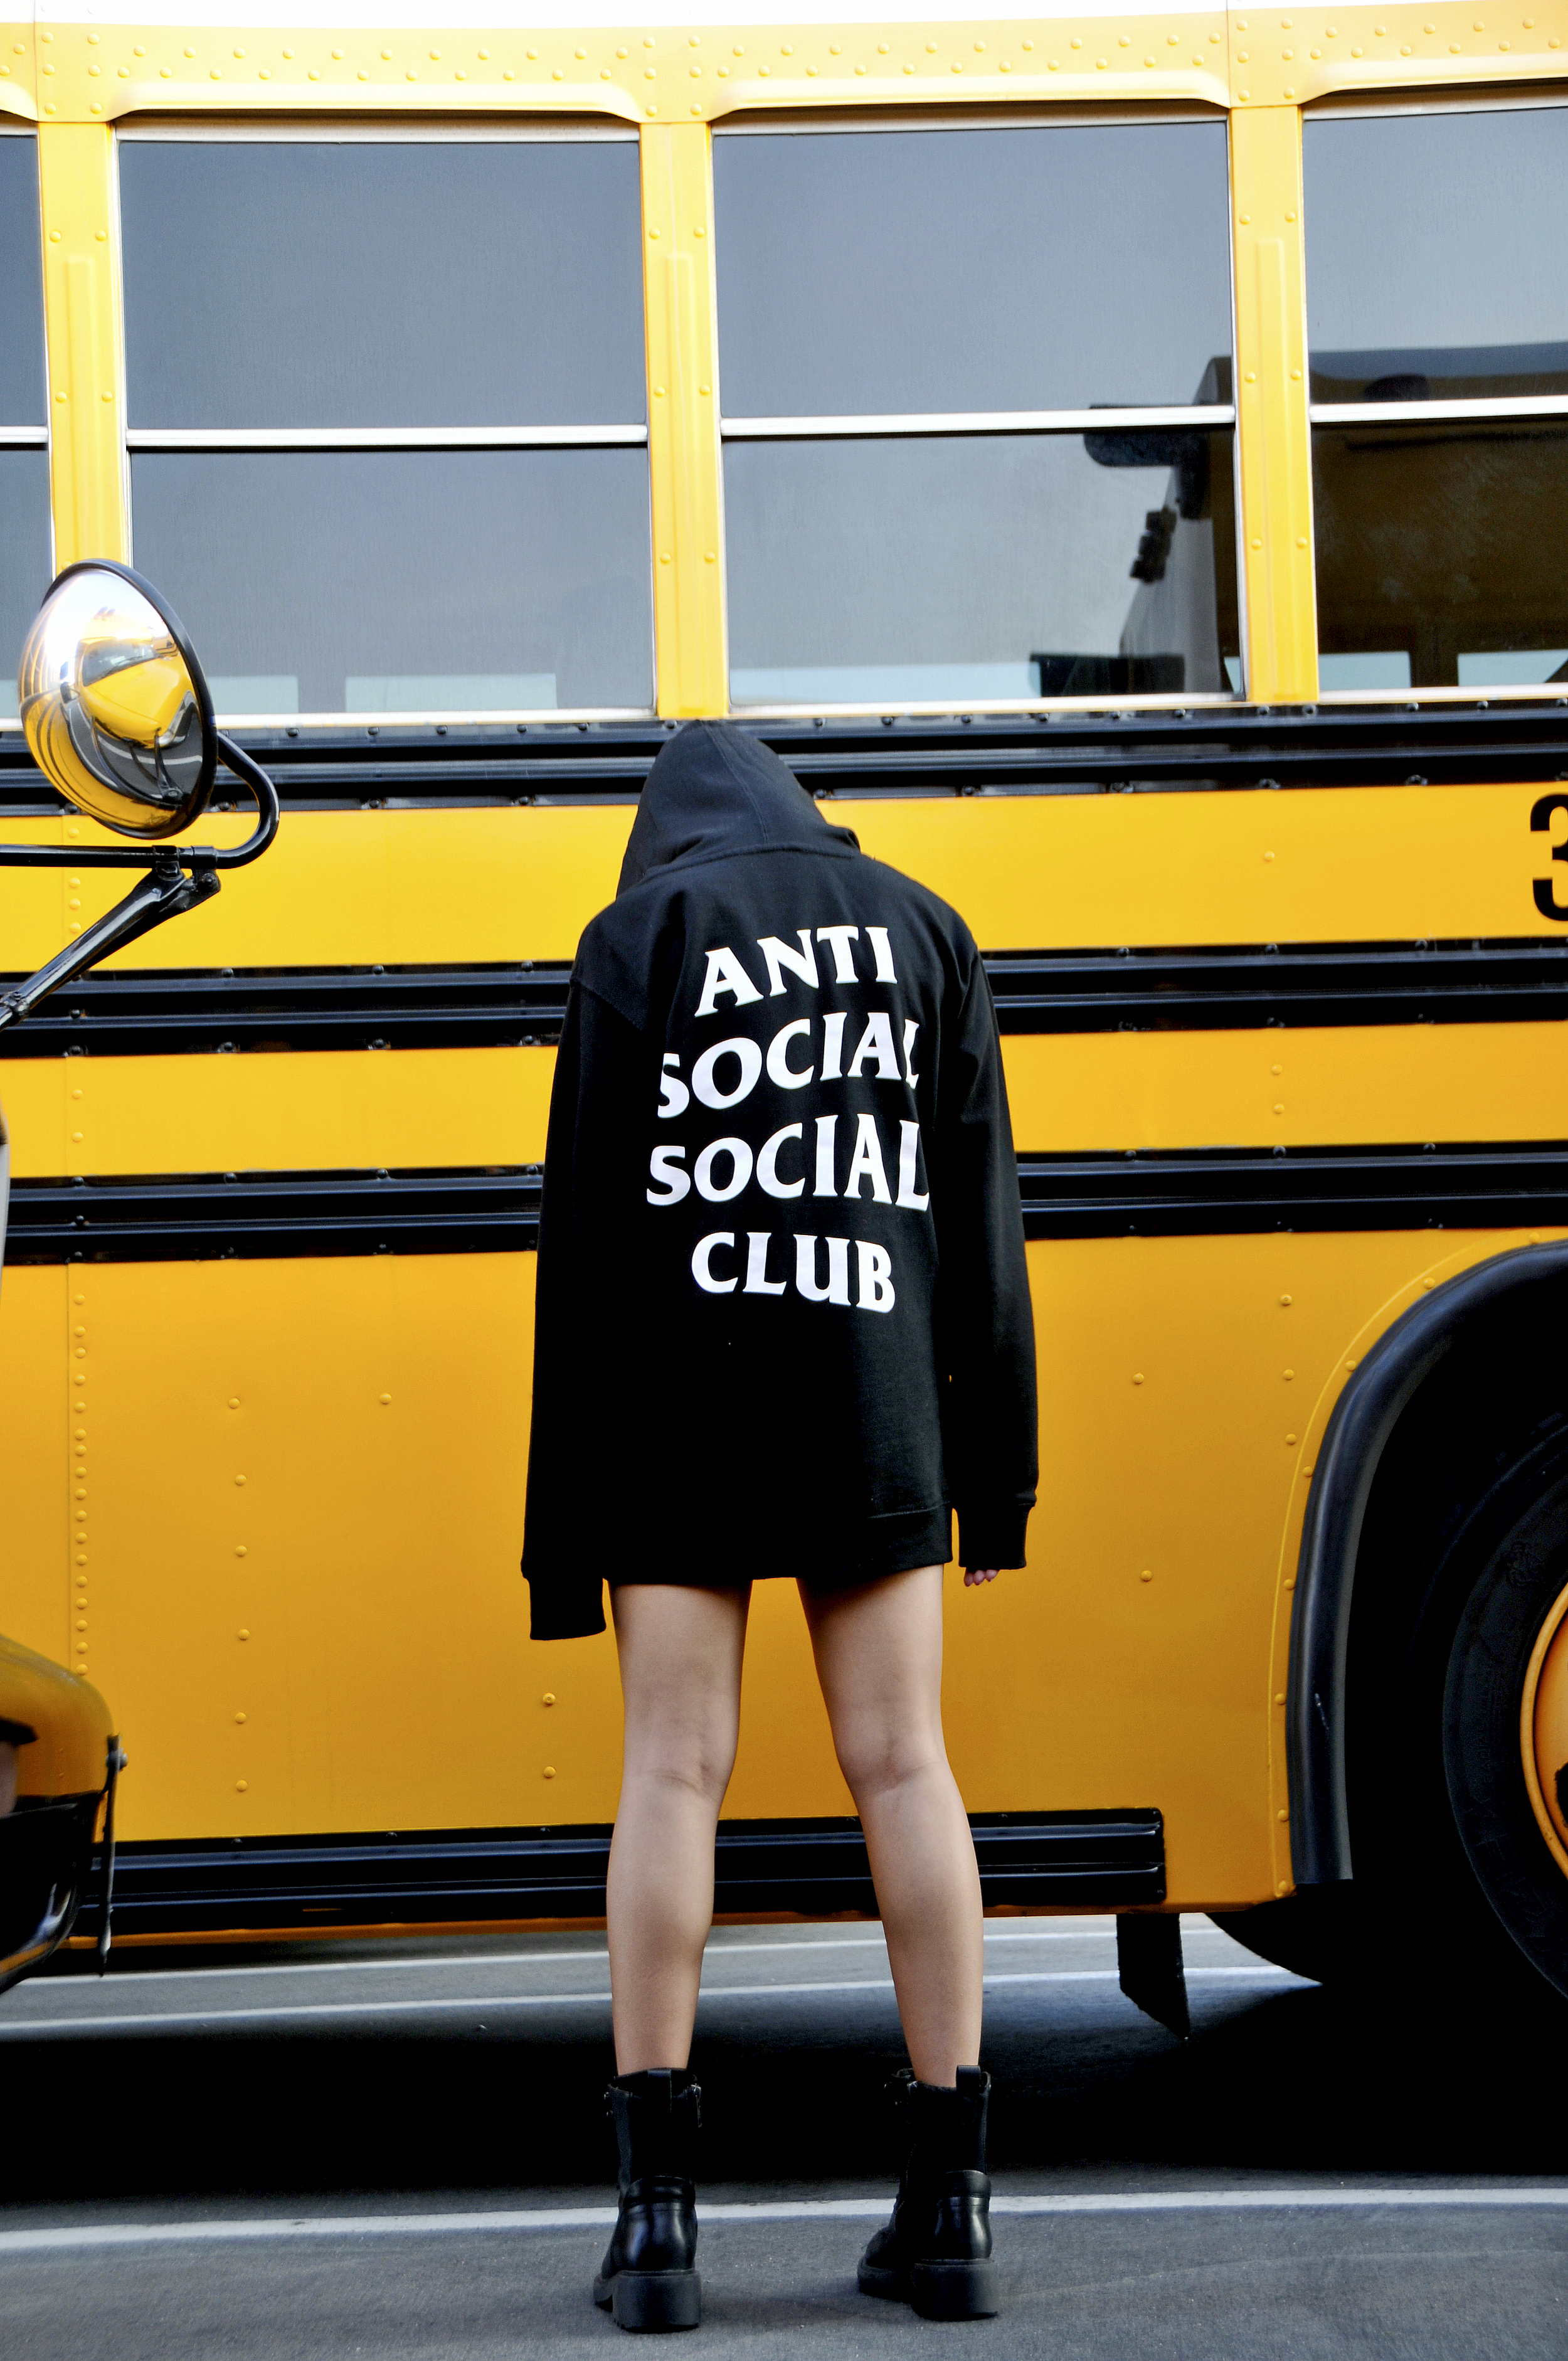 antisocial_bus_4